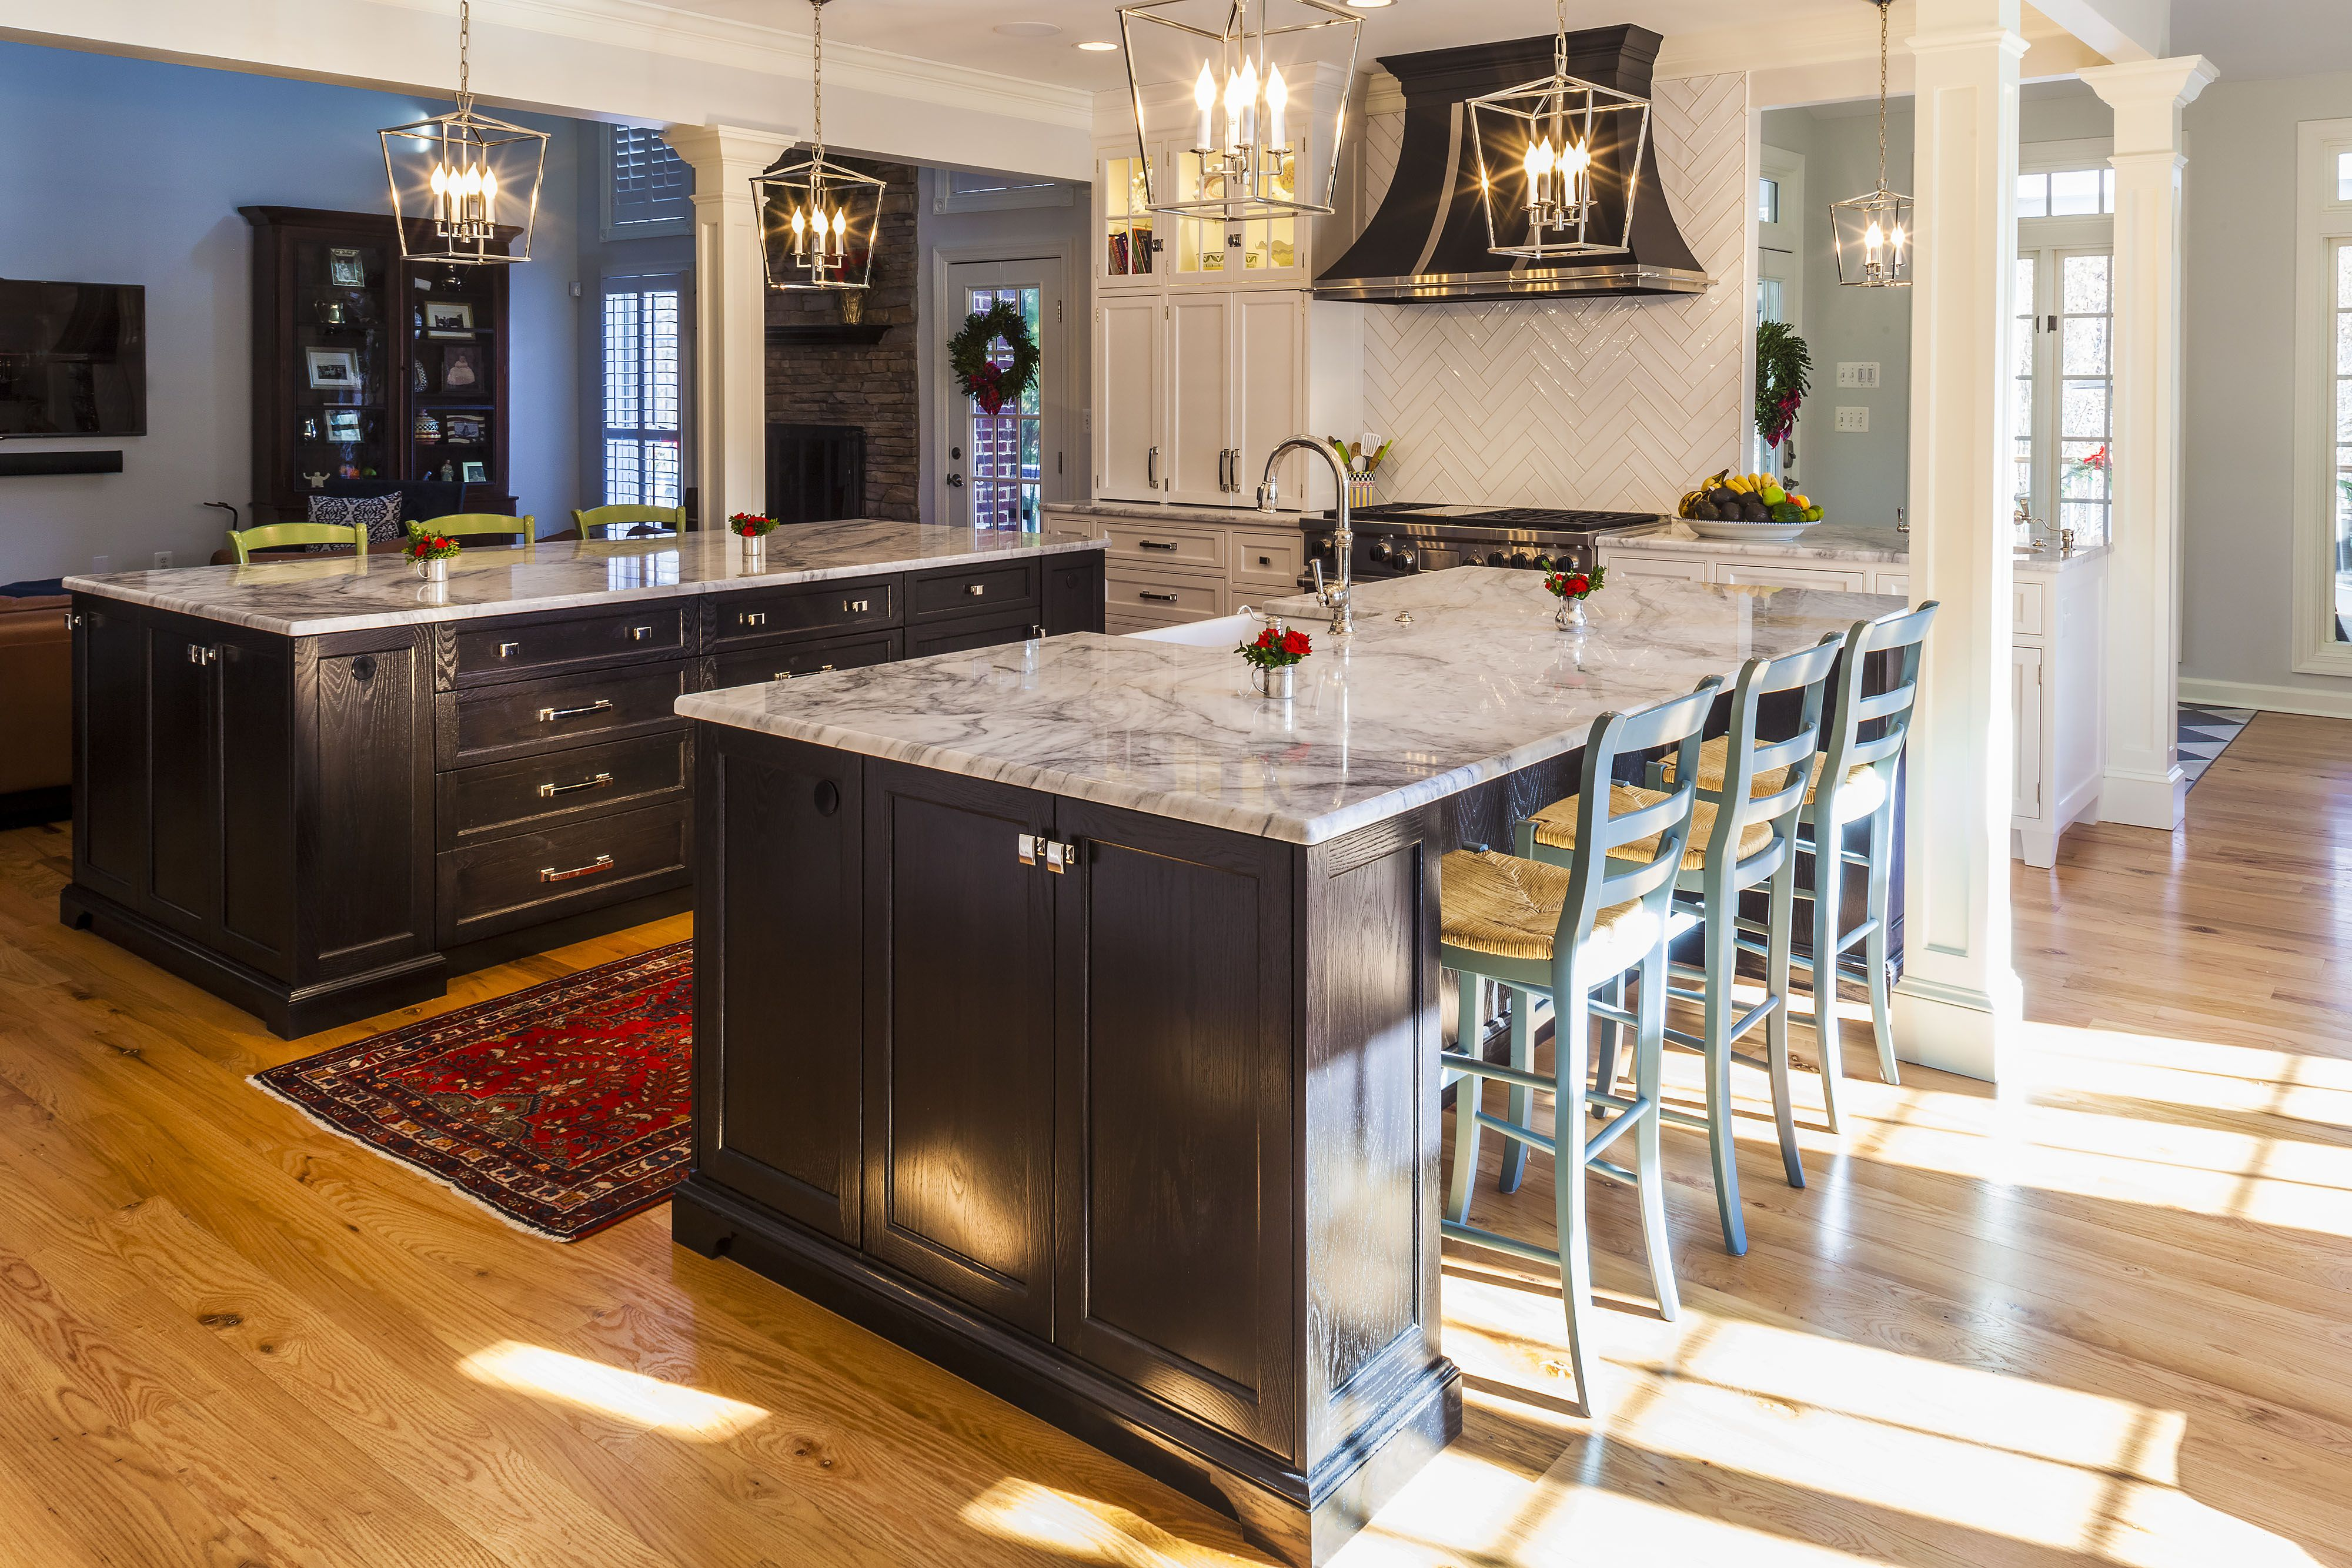 award of excellence kitchen remodel/addition under $100,000 t.w.